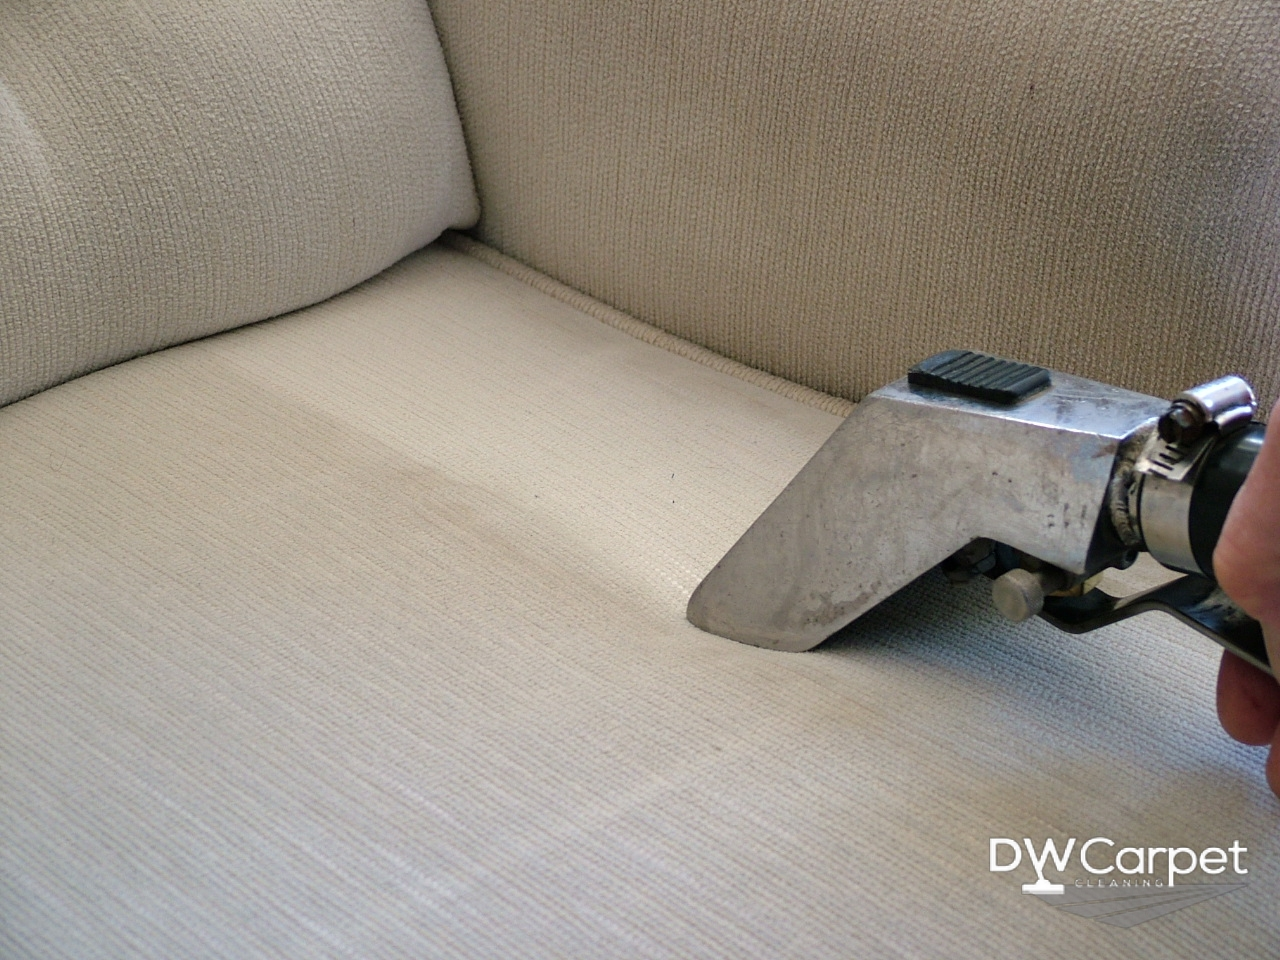 Upholstery-Cleaning-Singapore-Dw-Carpet-Cleaning-Singapore_wm